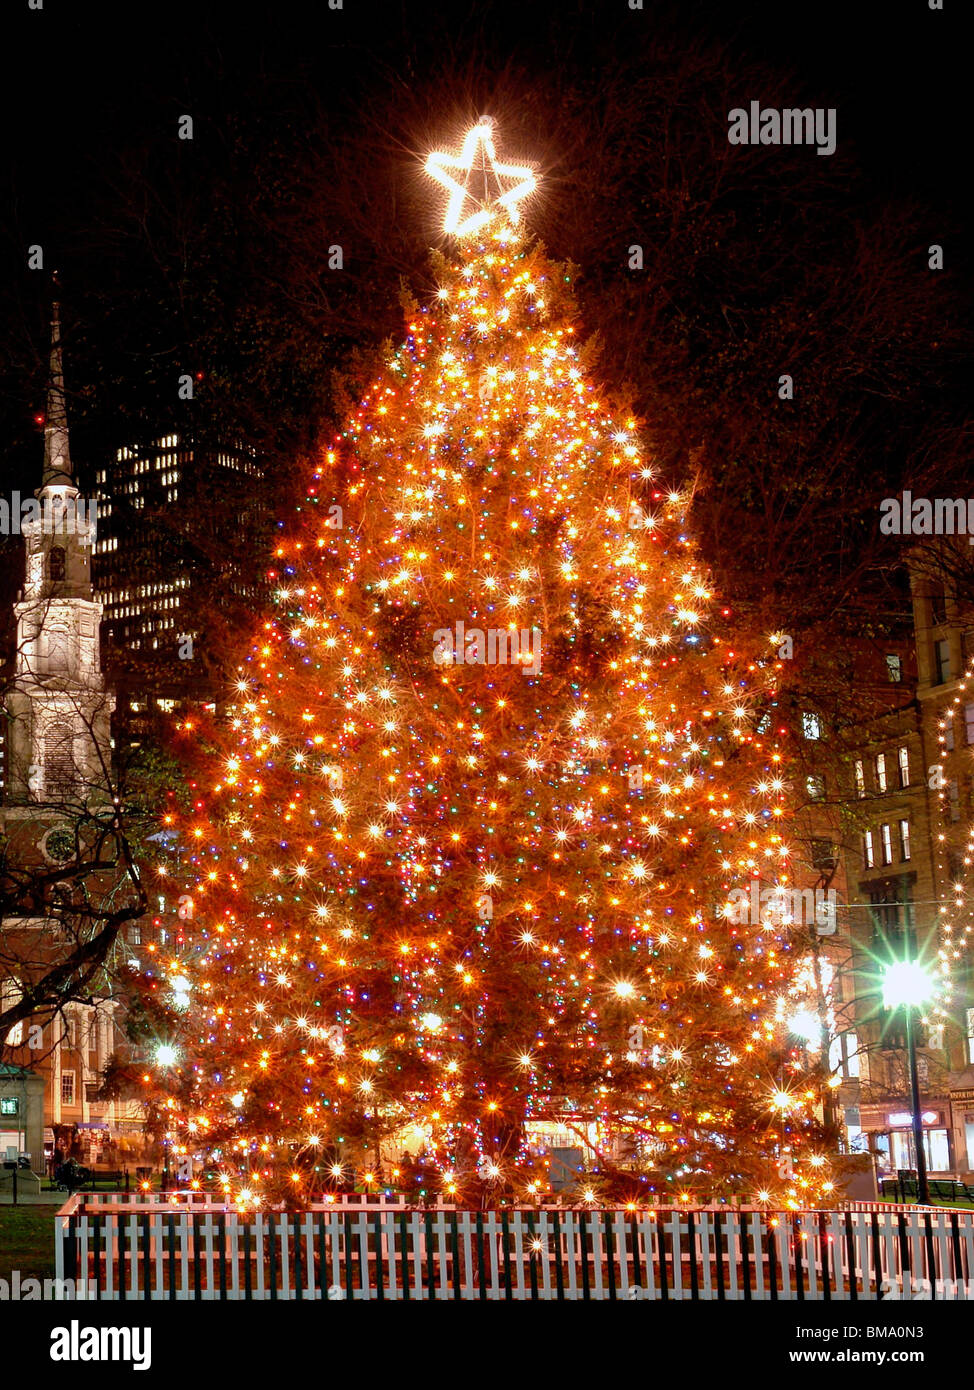 large decorated outdoor christmas tree on boston common lit up at night